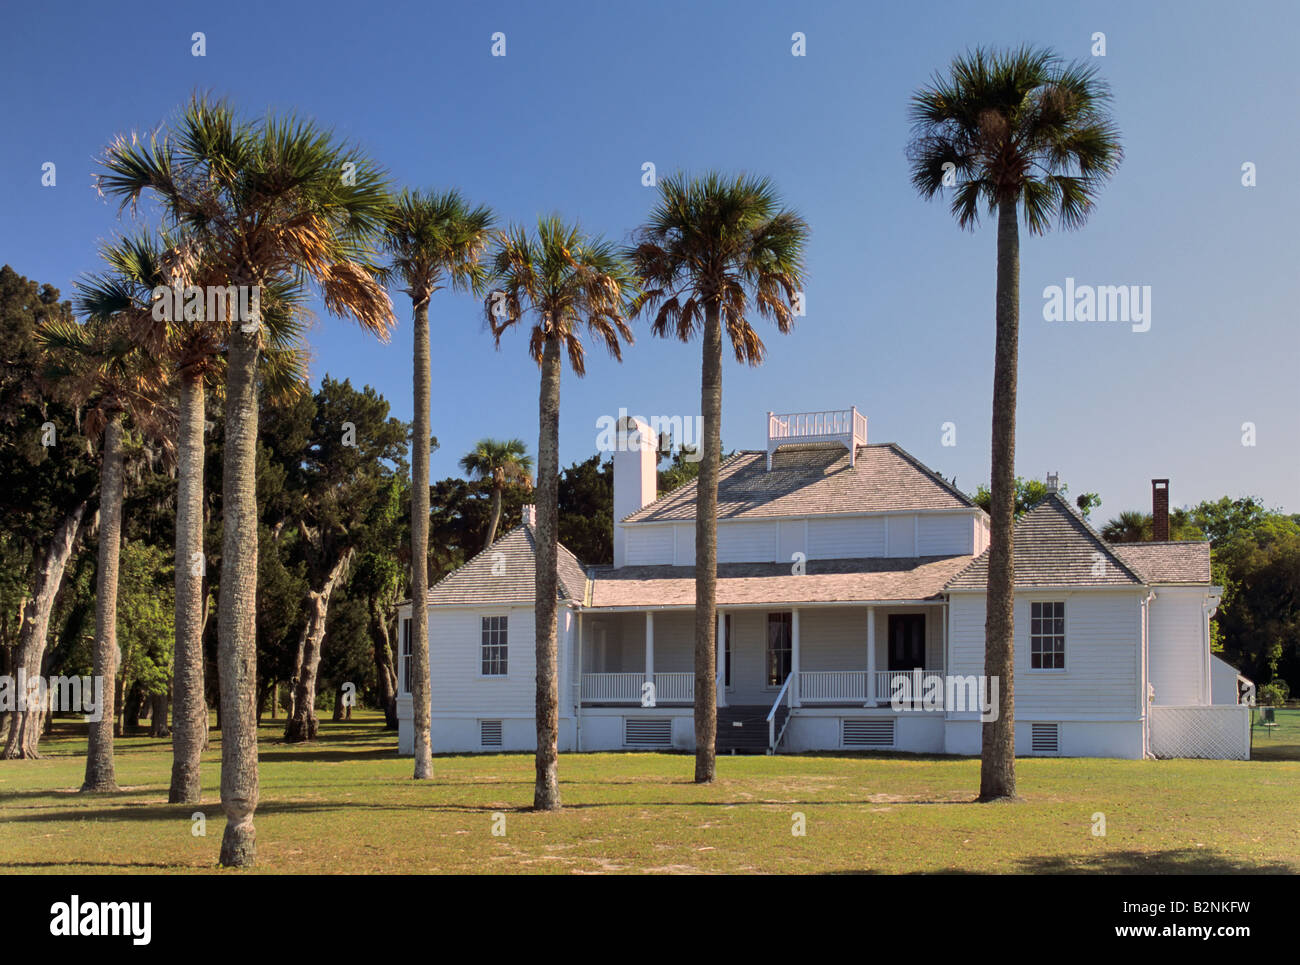 Kingsley Plantation at Fort George Island near Jacksonville Florida USA - Stock Image